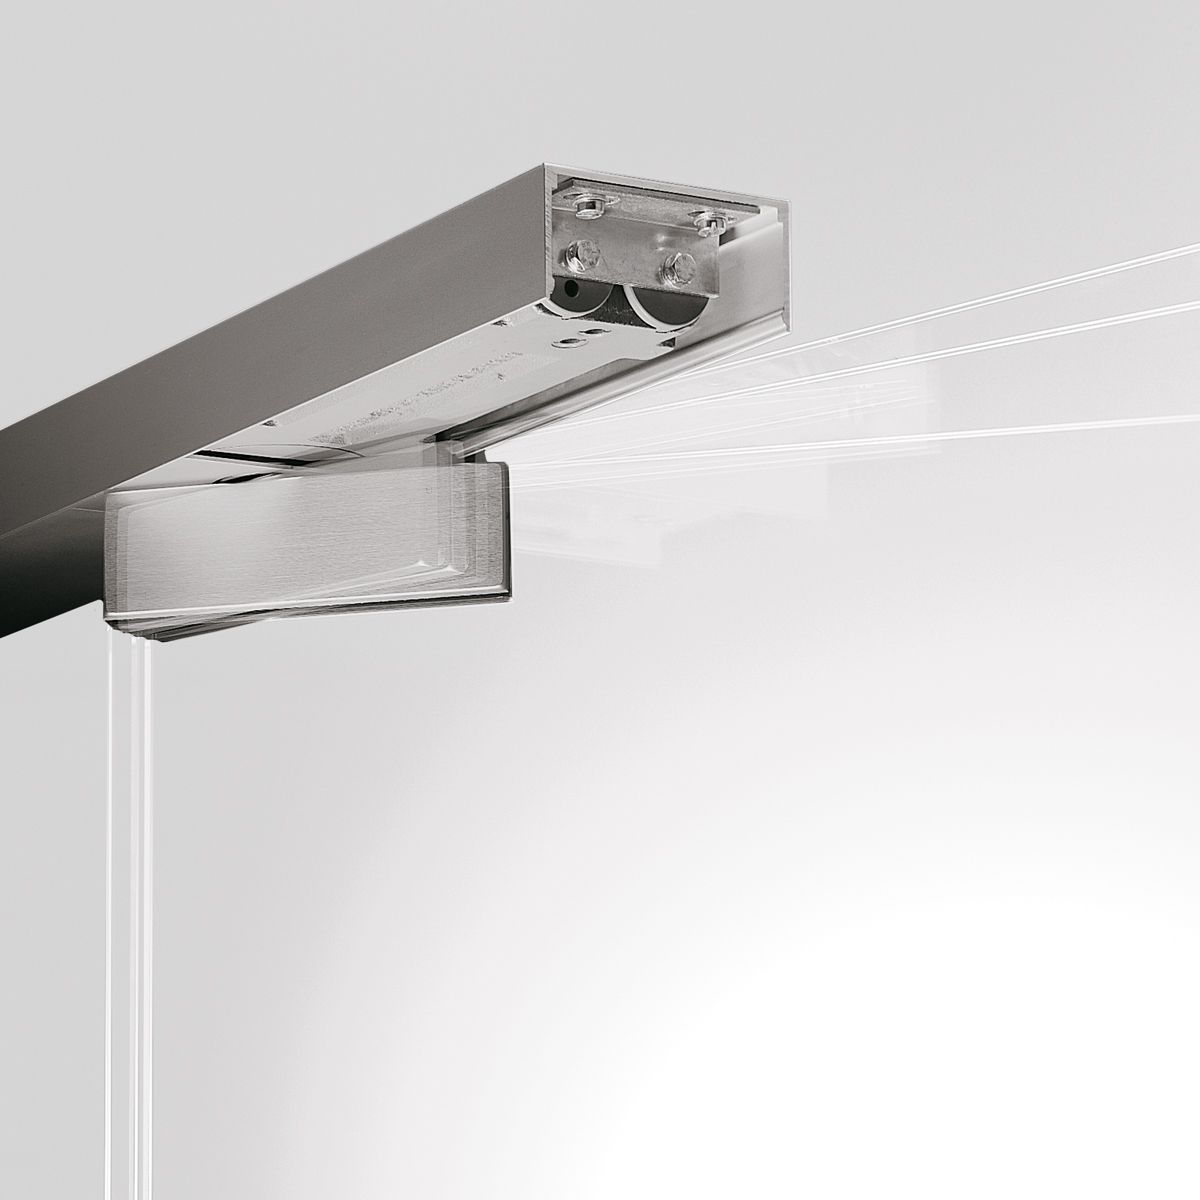 Dorma Rp Patch Fittings For Double Action Doors With